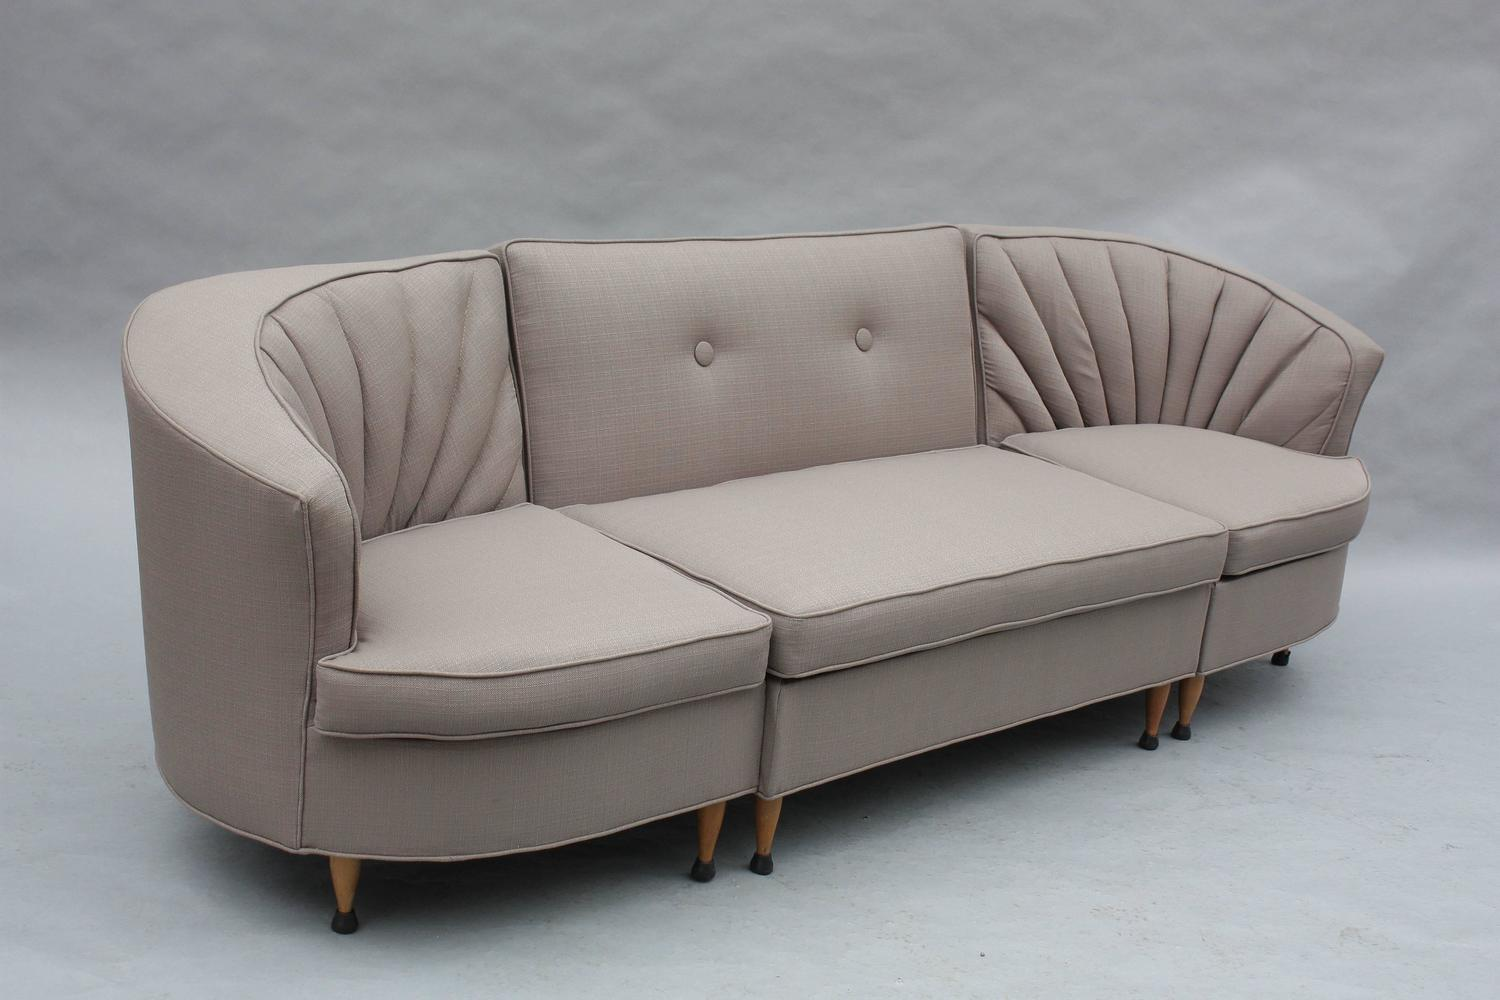 Mid century modern 1960s sectional sofa for sale at 1stdibs for Mid century sectional sofa for sale